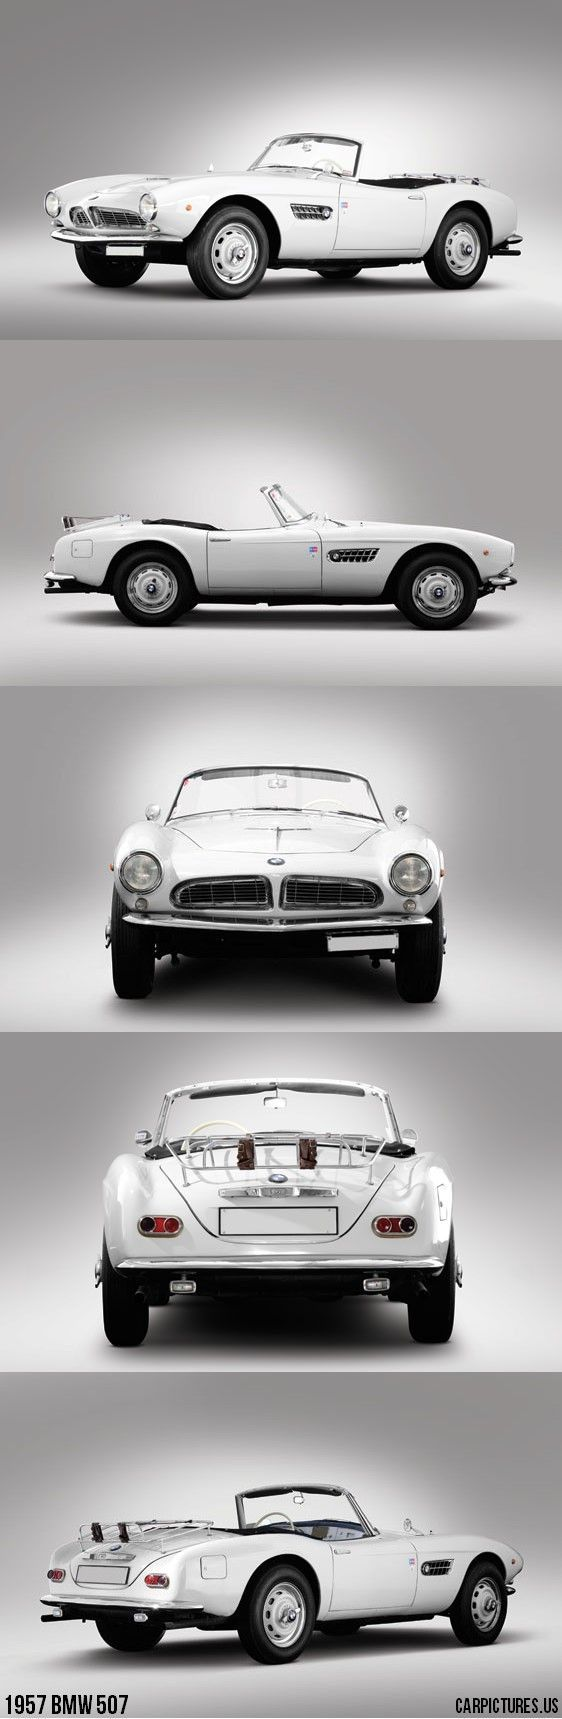 1957 BMW 507 BEVERLY HILLS CAR CLUB is always looking to purchase ...